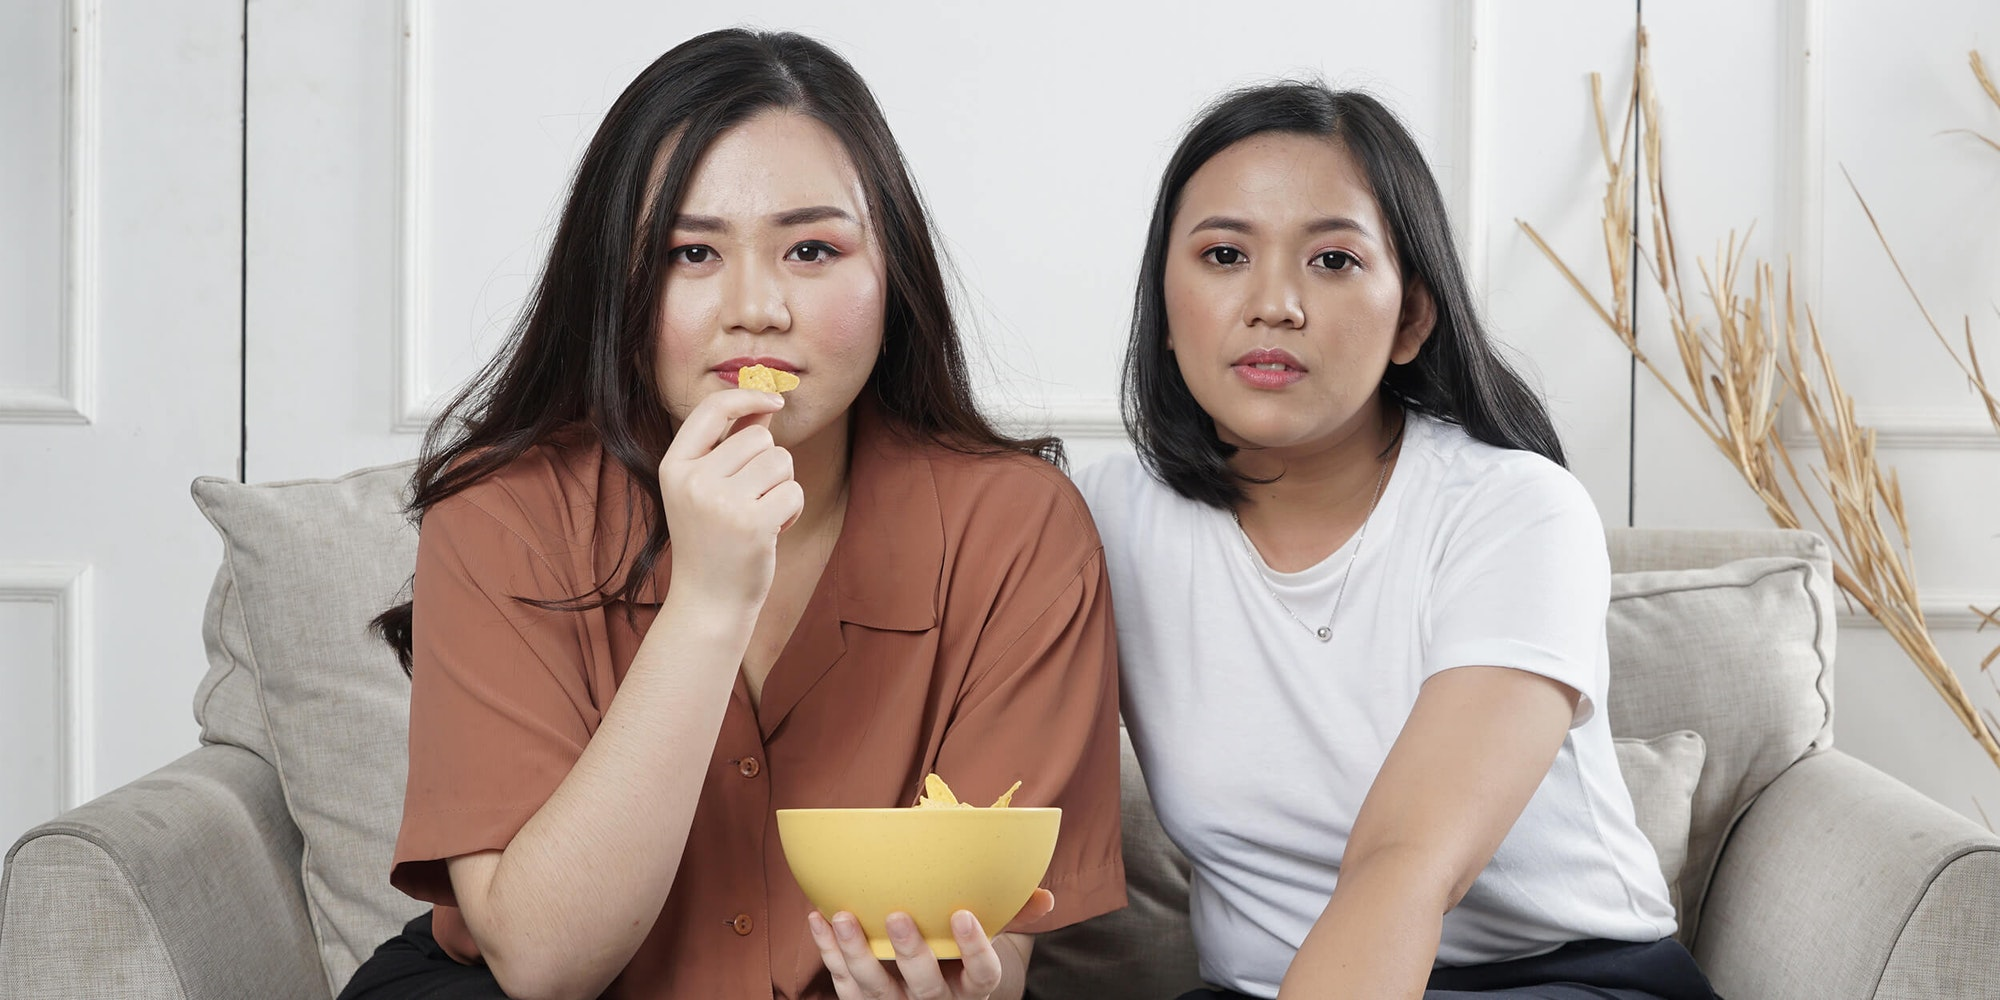 women sitting on couch eating chips